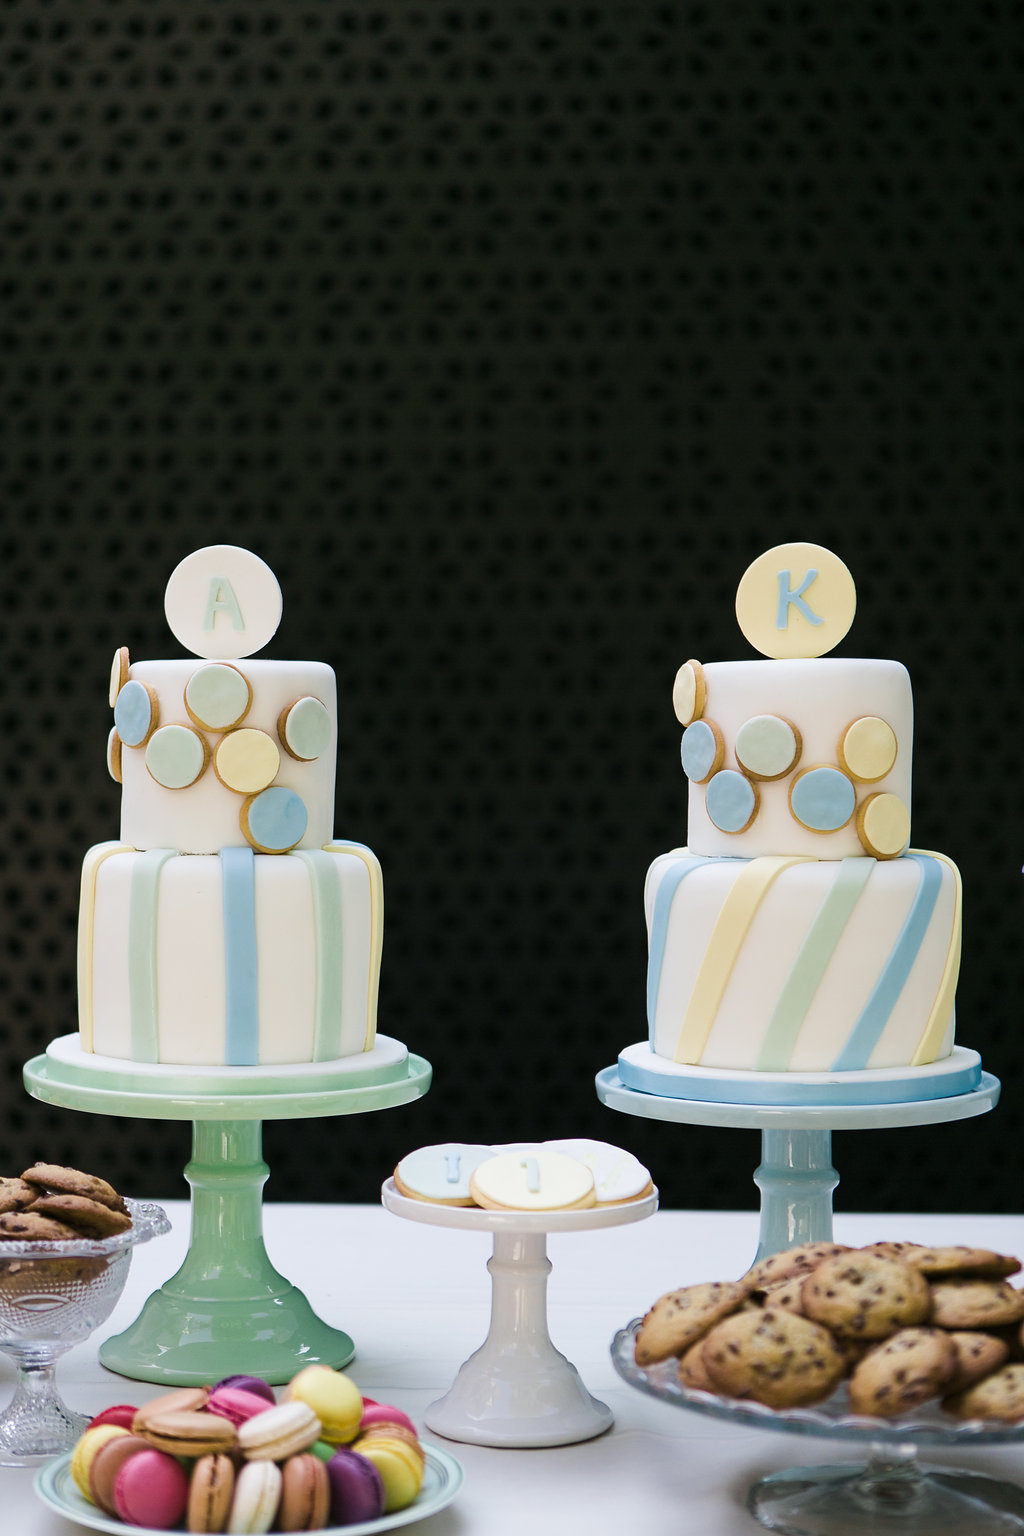 Paris birthday party for twin boys - Fête in France